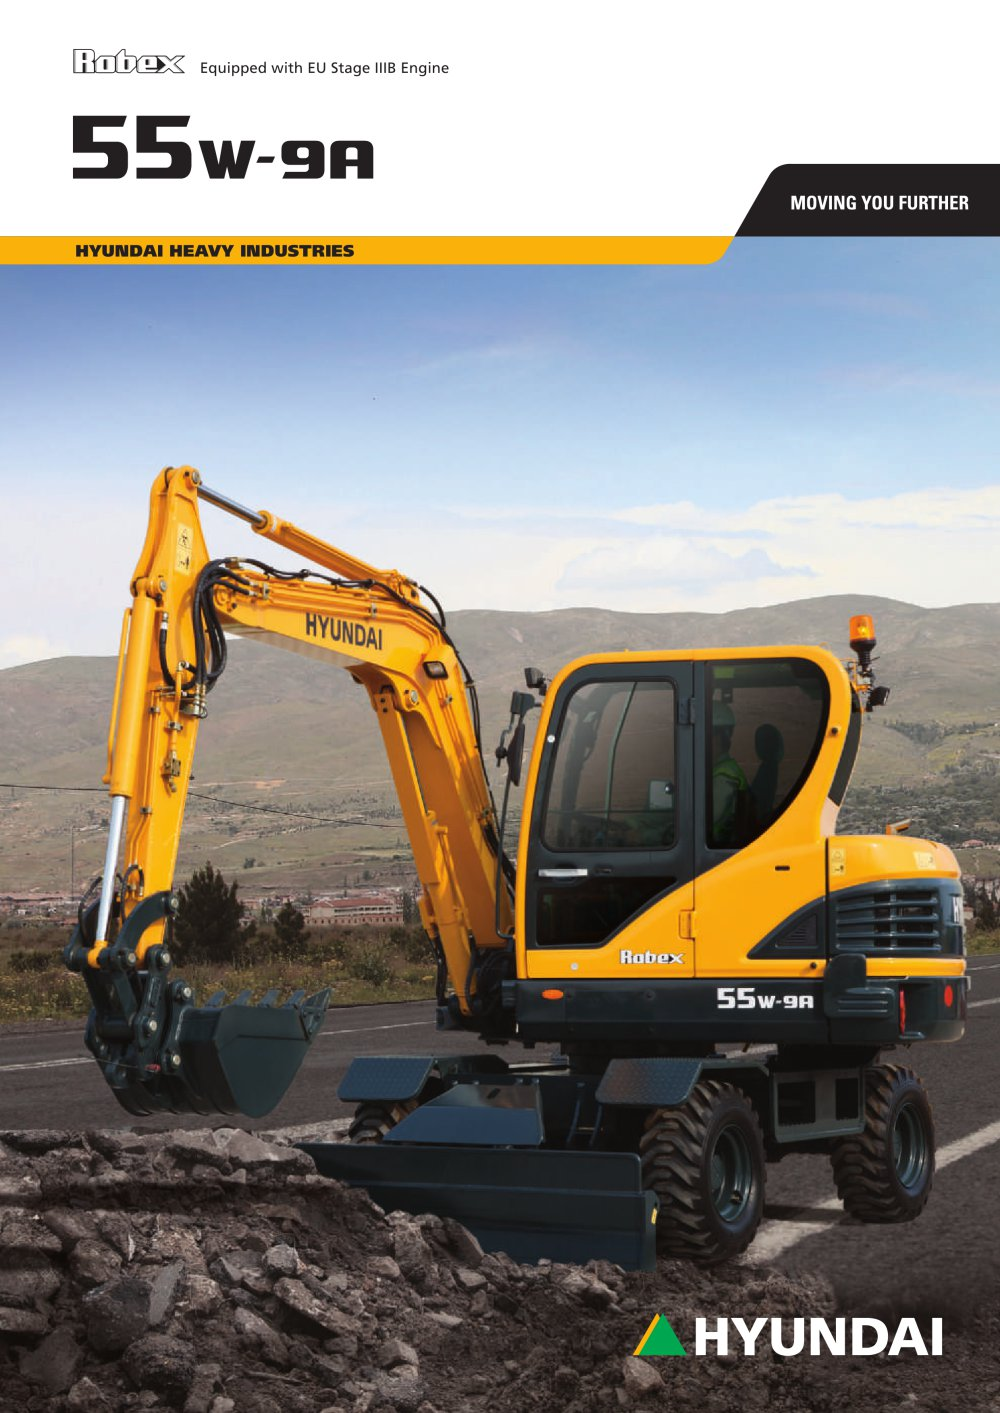 R55W-9A WHEELED EXCAVATOR - 1 / 12 Pages